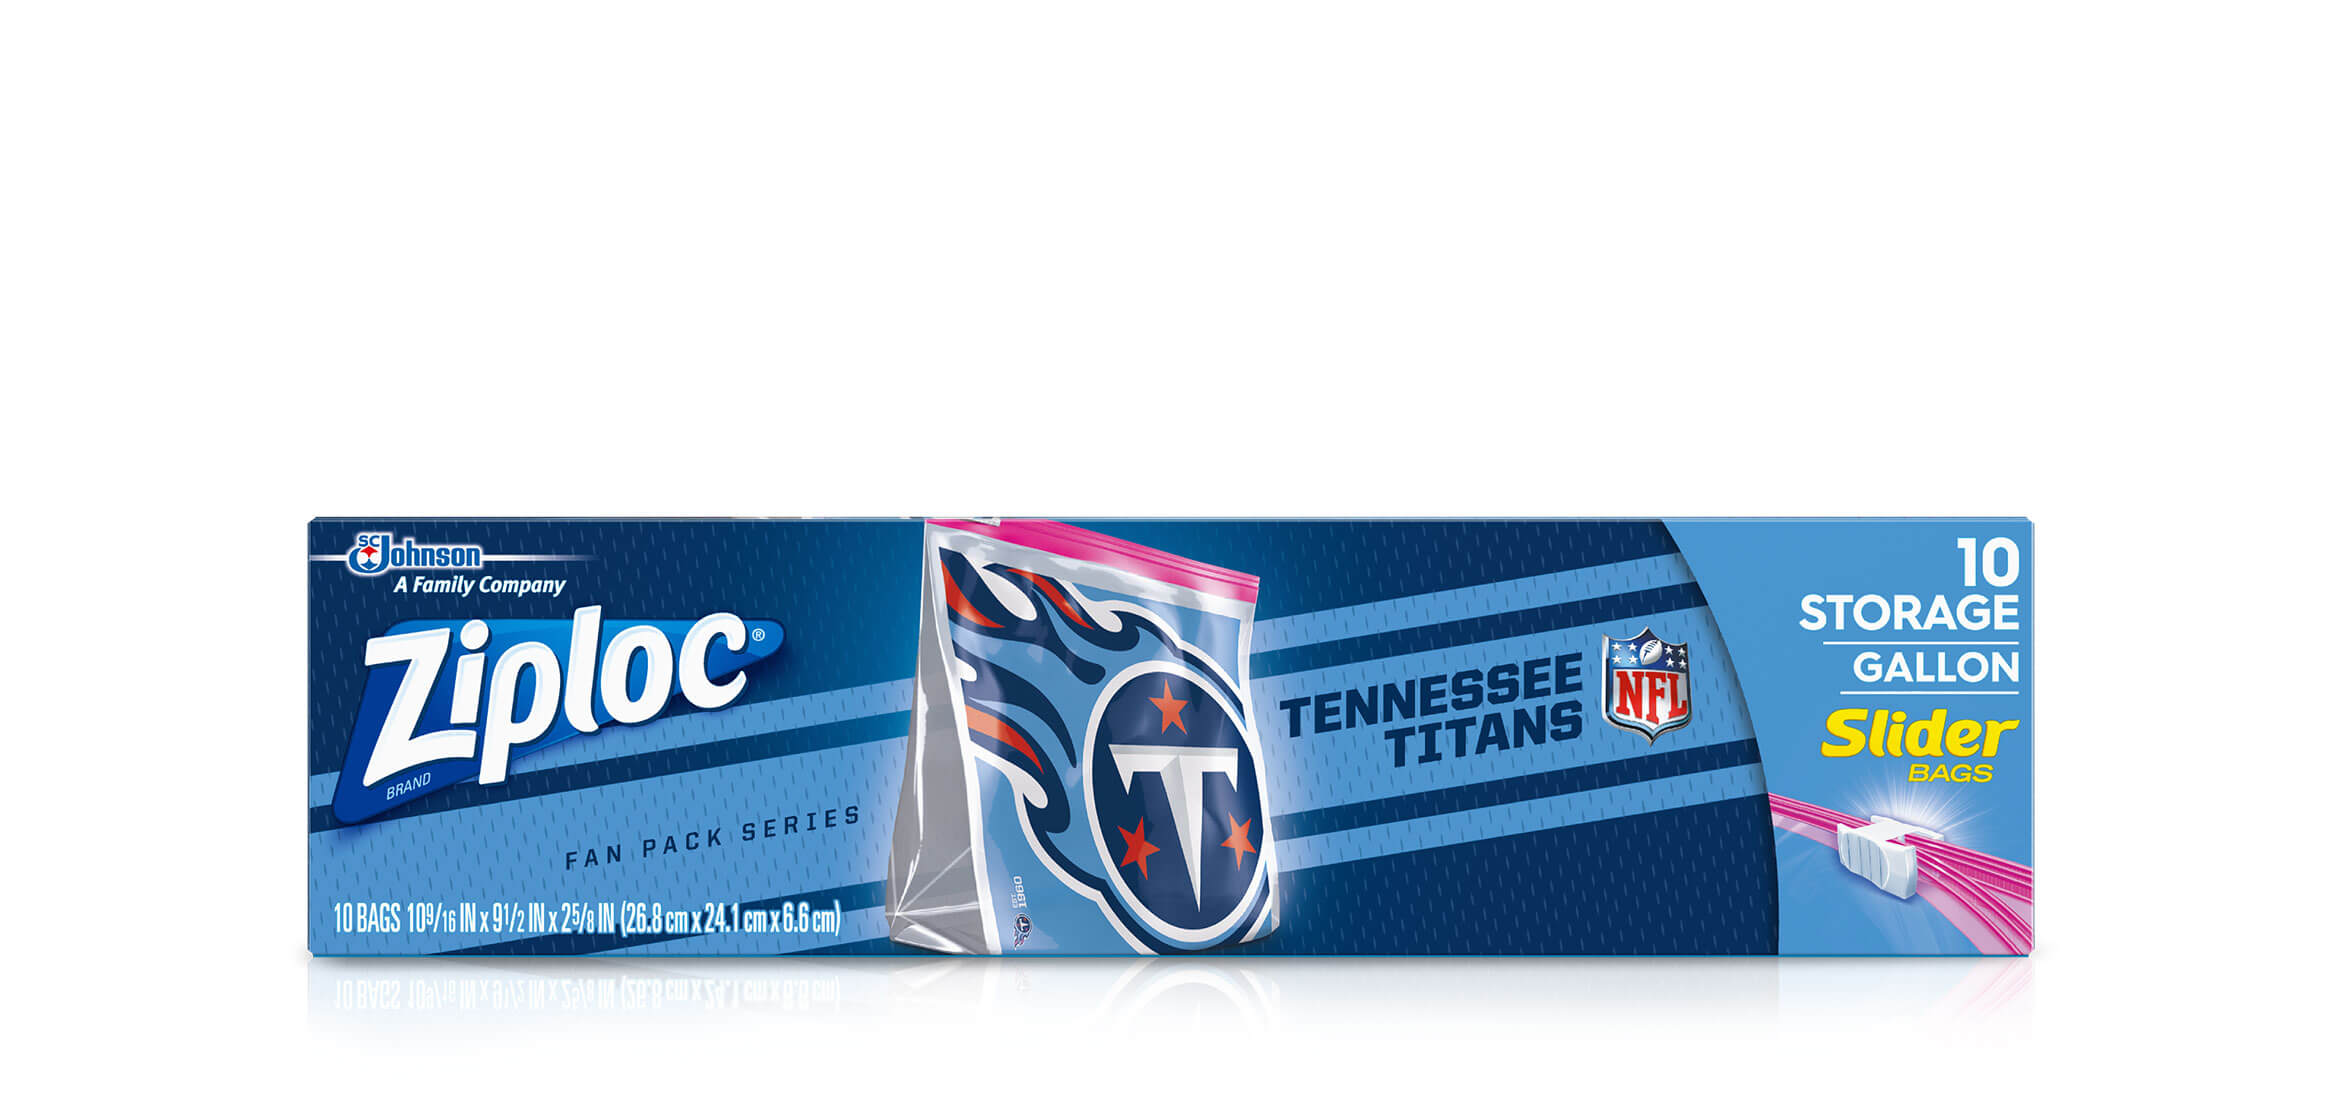 Tennessee-Titans-Slider-Storage-Gallon-Hero-2X